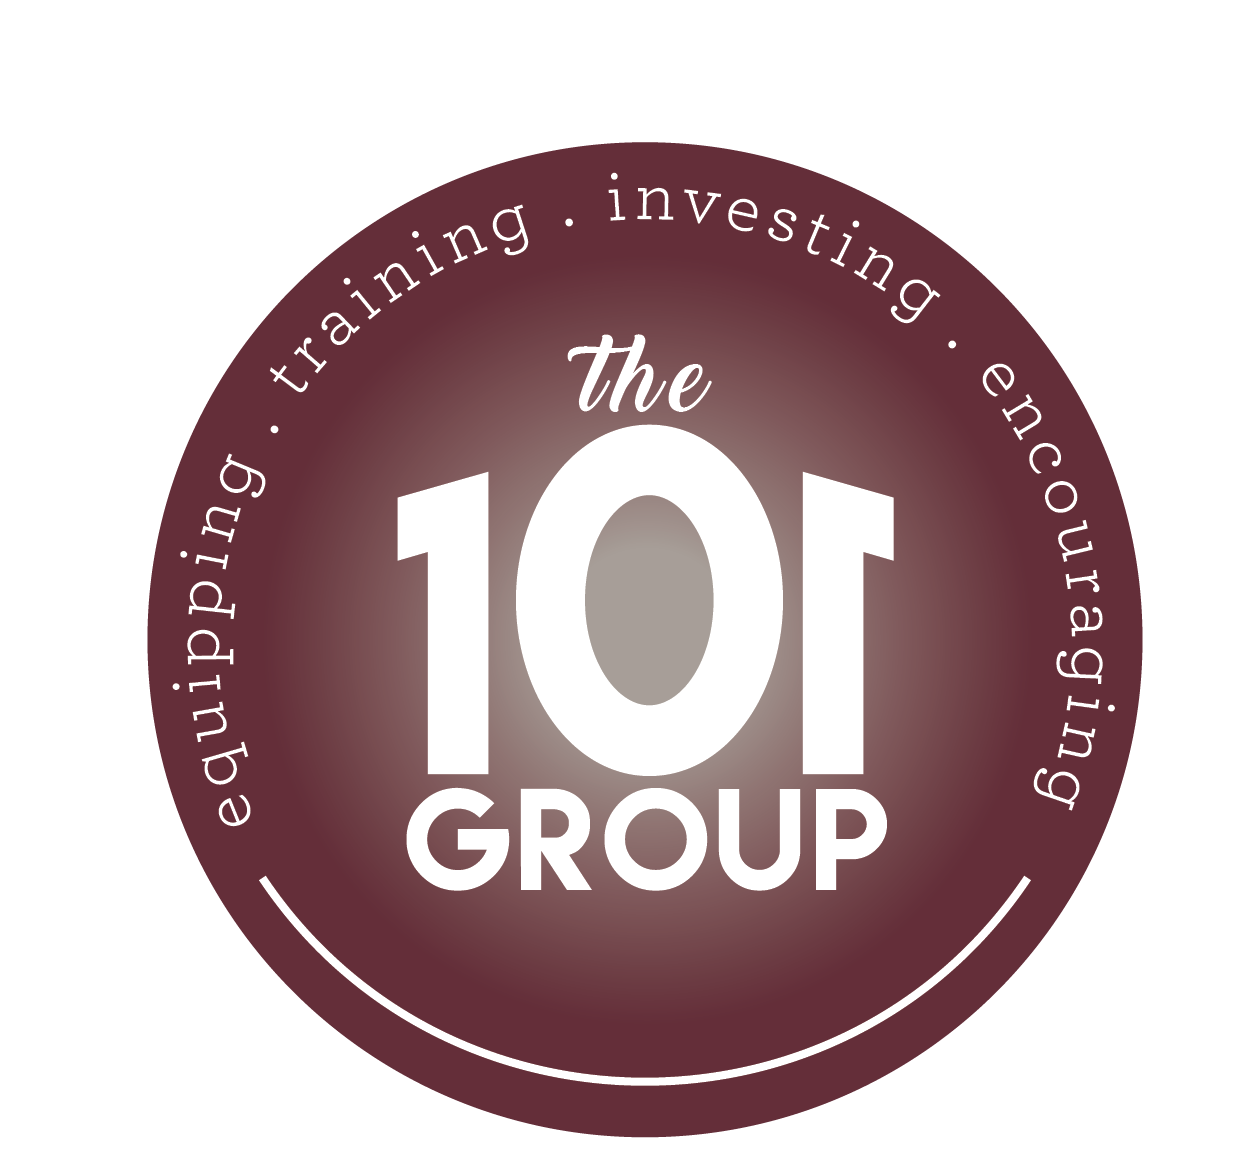 The 101 Group